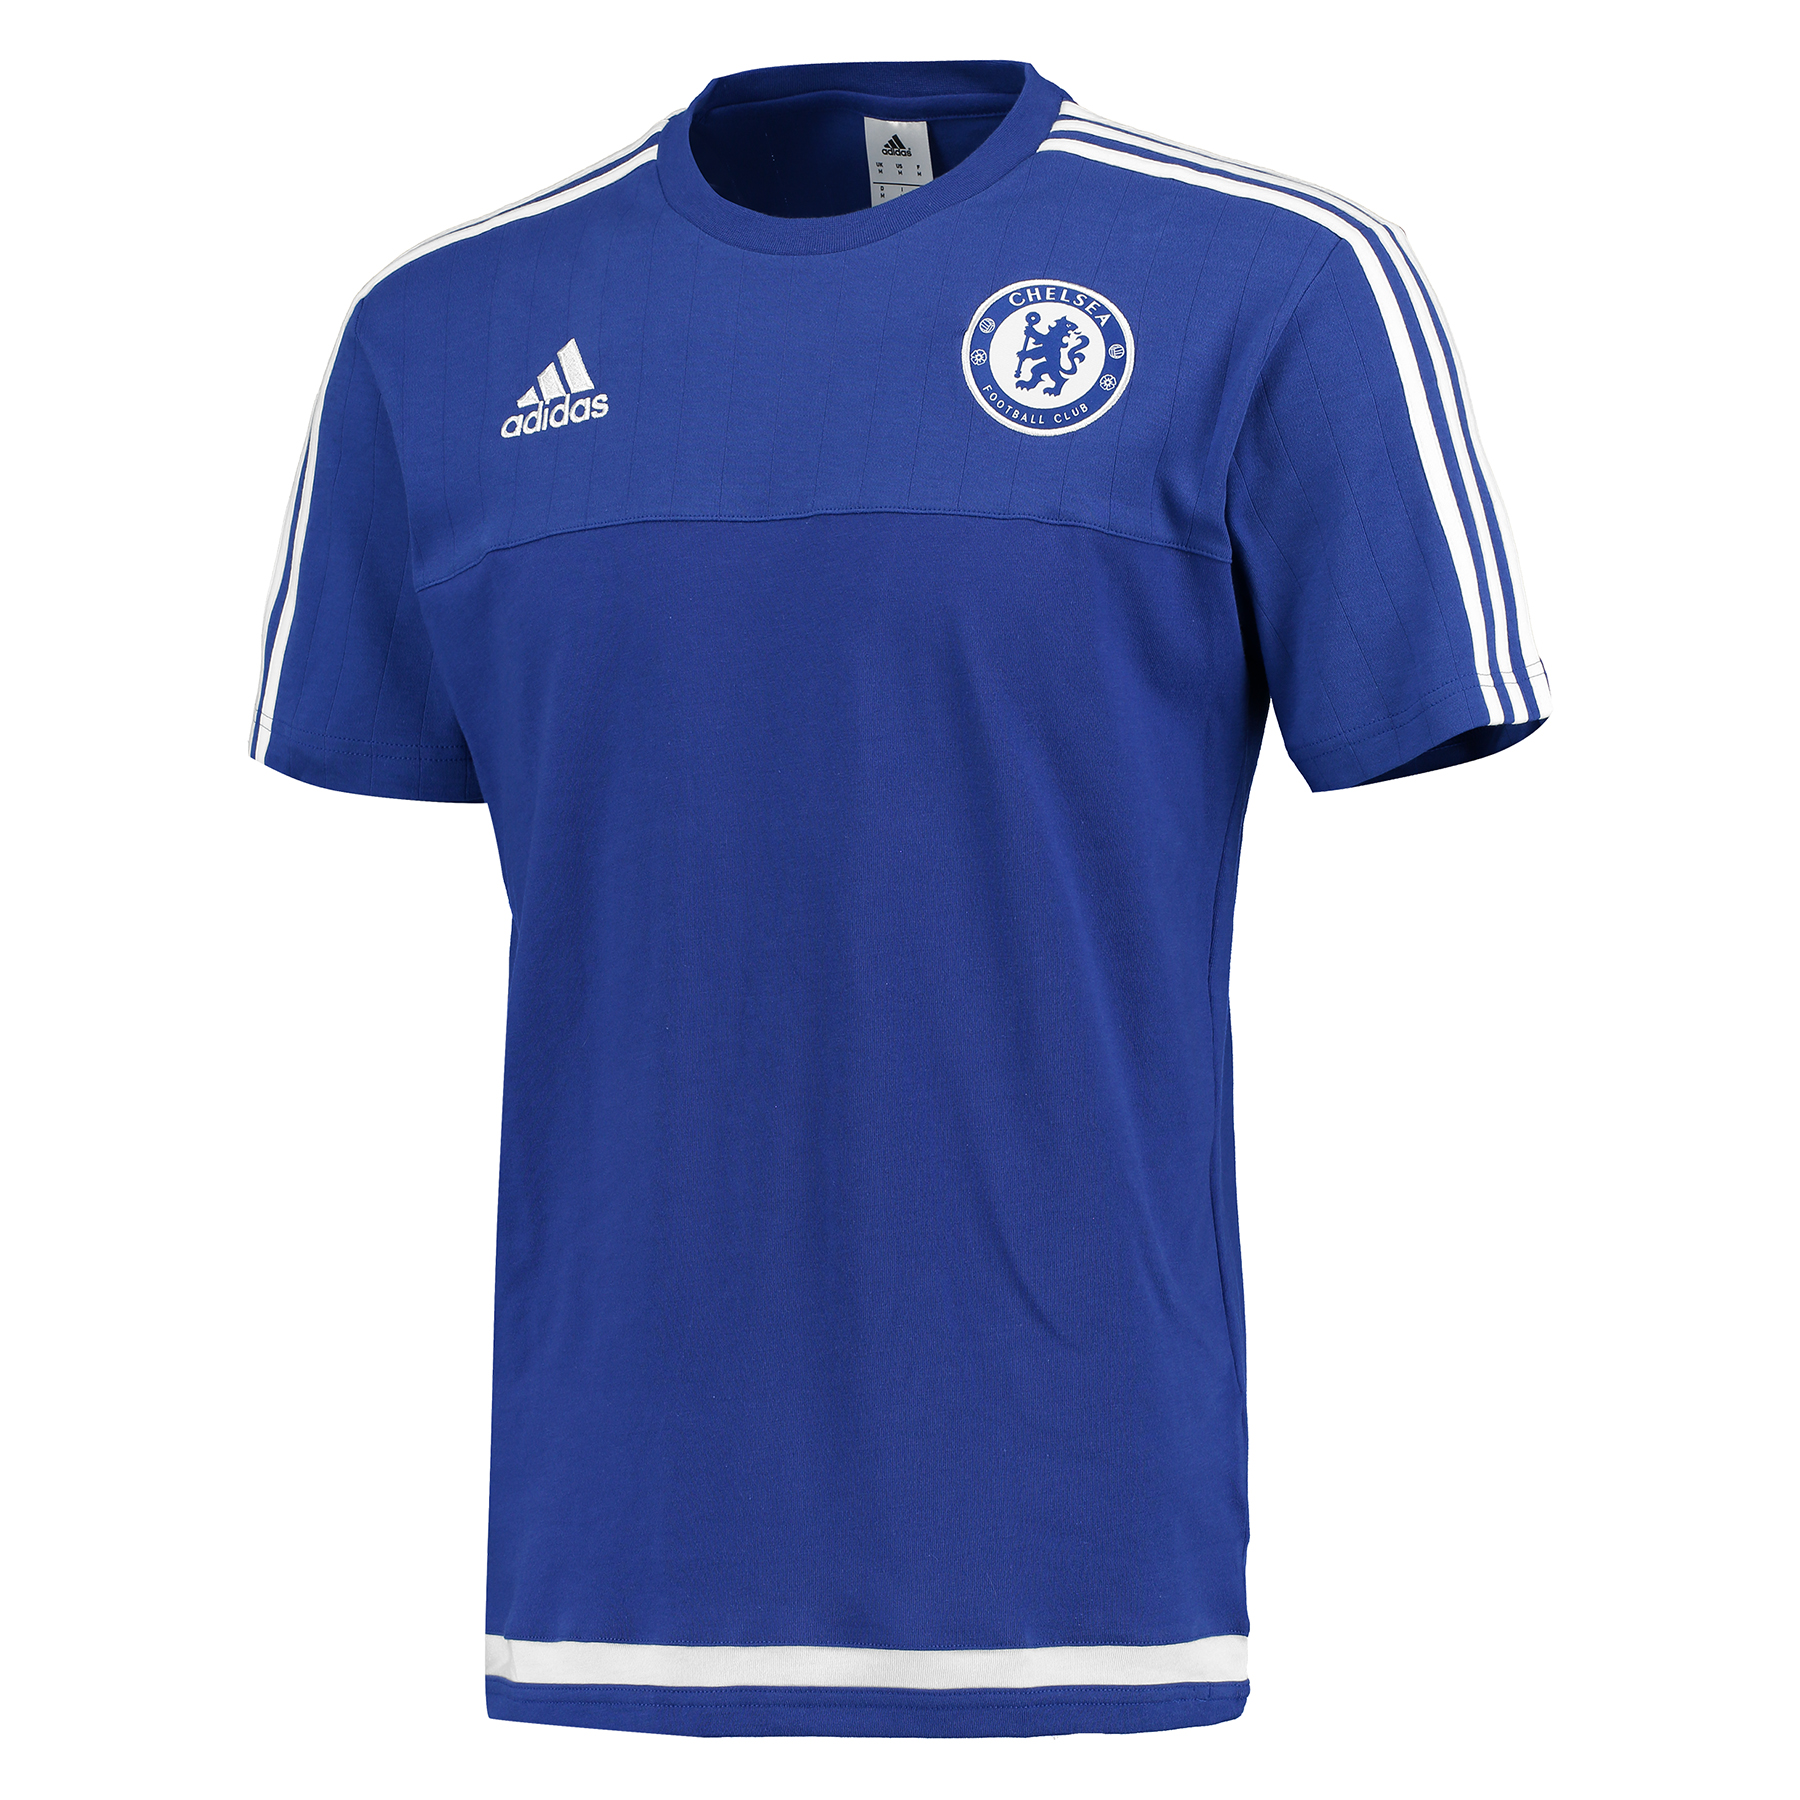 Chelsea Training T-Shirt Blue   Support your favourite club in comfort with the Chelsea Training T-Shirt.   Built with engineered pinstripes and a woven badge, you can display love for your favourite club when you wear this Chelsea Training T-Shirt. Benefits: Rib collar Engineered pinstripes 60% cotton / 40% PES Club crest: woven badge